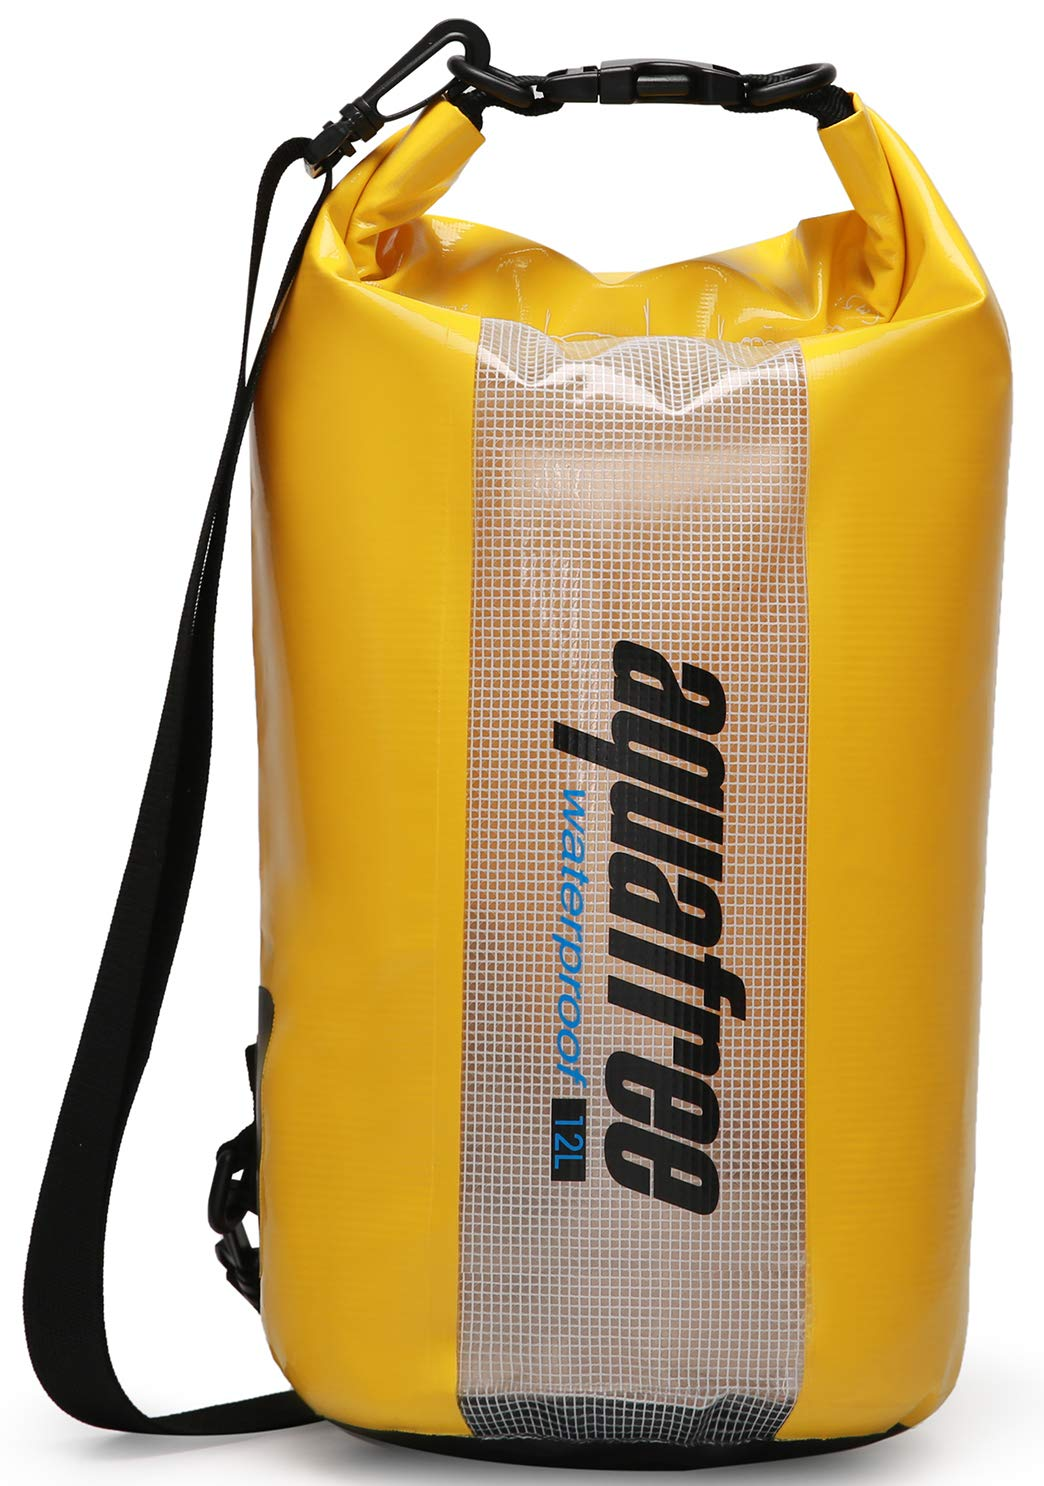 aquafree Waterproof Dry Bag 12L 24L See Through Window Detachable Adjustable Shoulder Strap Roll Top Sack Keeps Gear Dry for All Water Sports Kayaking Boating Rafting Surfing Fishing Camping Beach